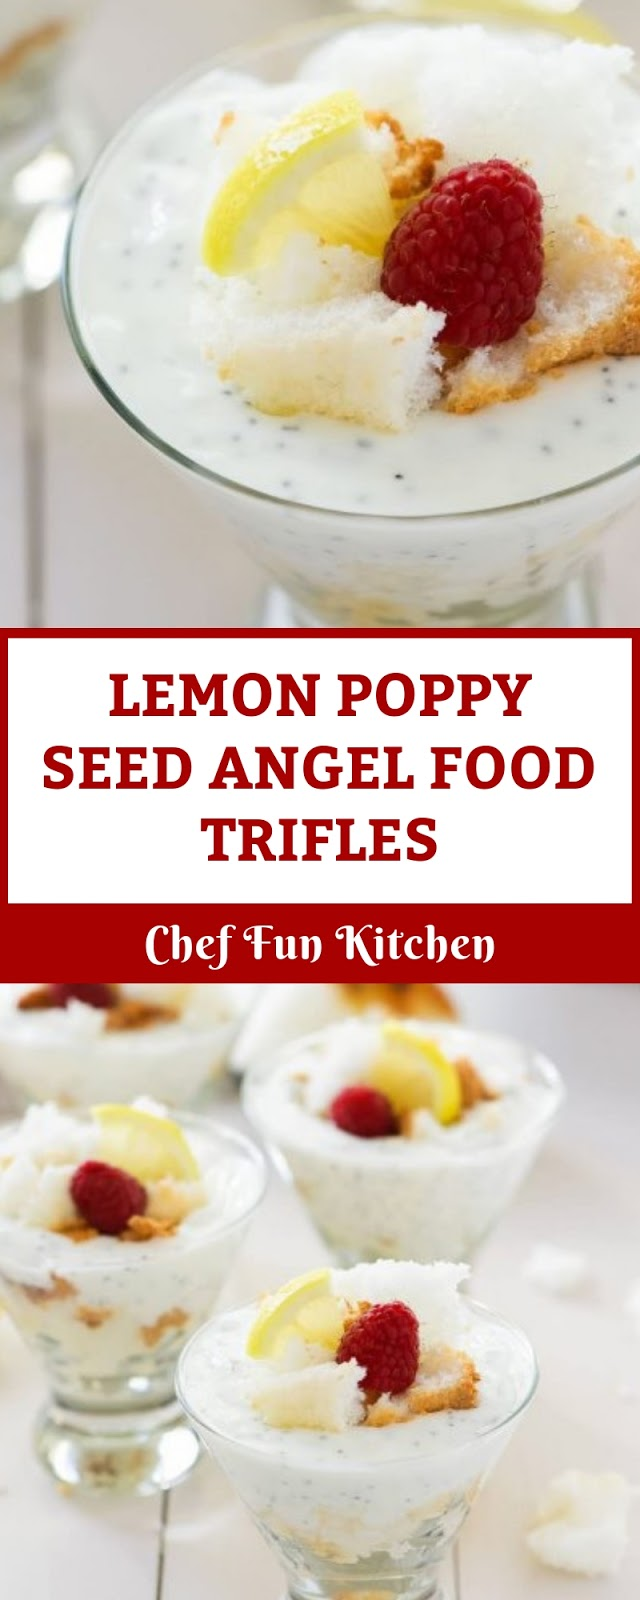 LEMON POPPY SEED ANGEL FOOD TRIFLES